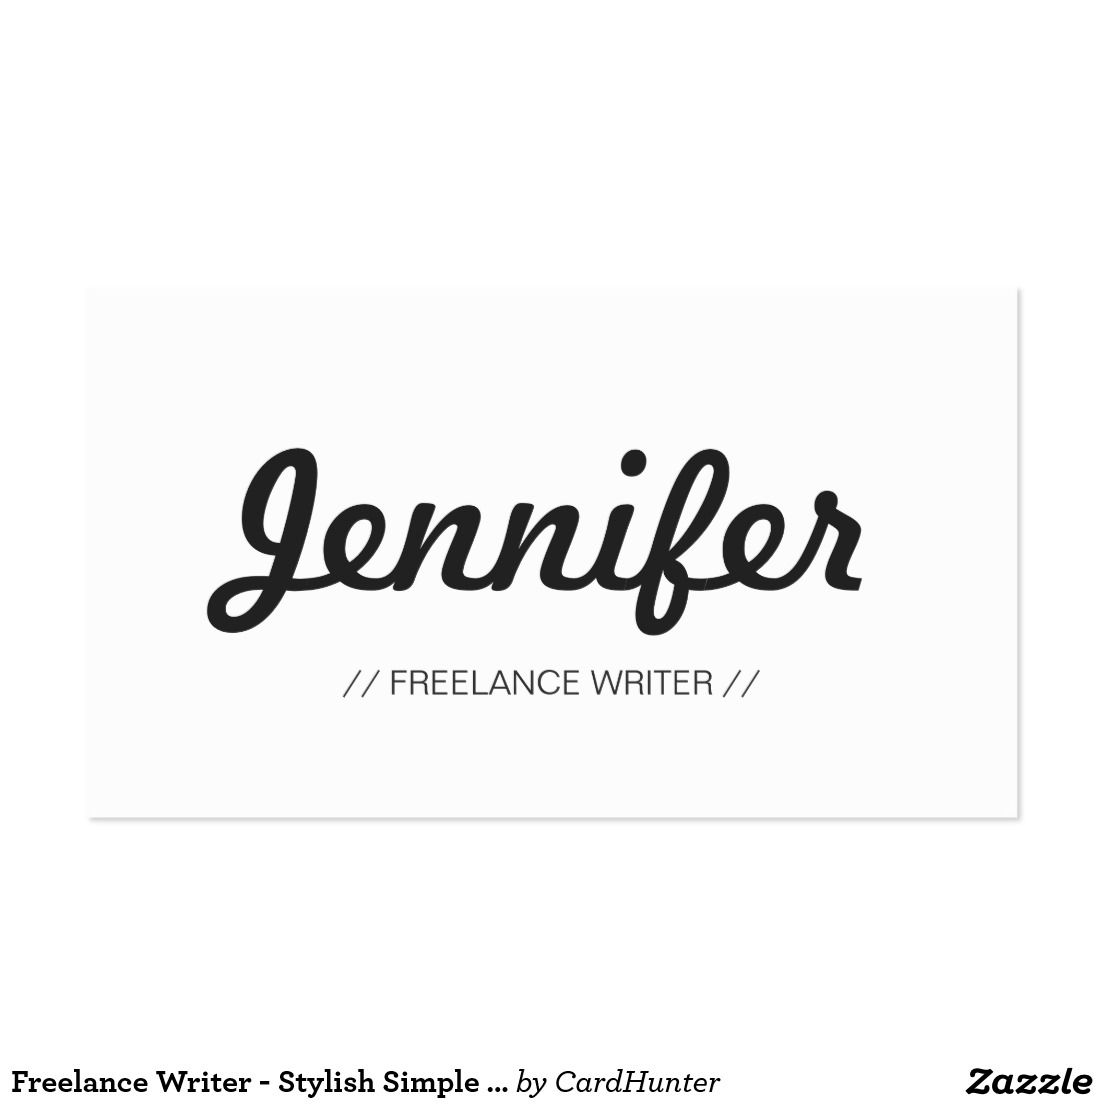 Freelance Writer - Stylish Simple Concise Business Card | Business ...